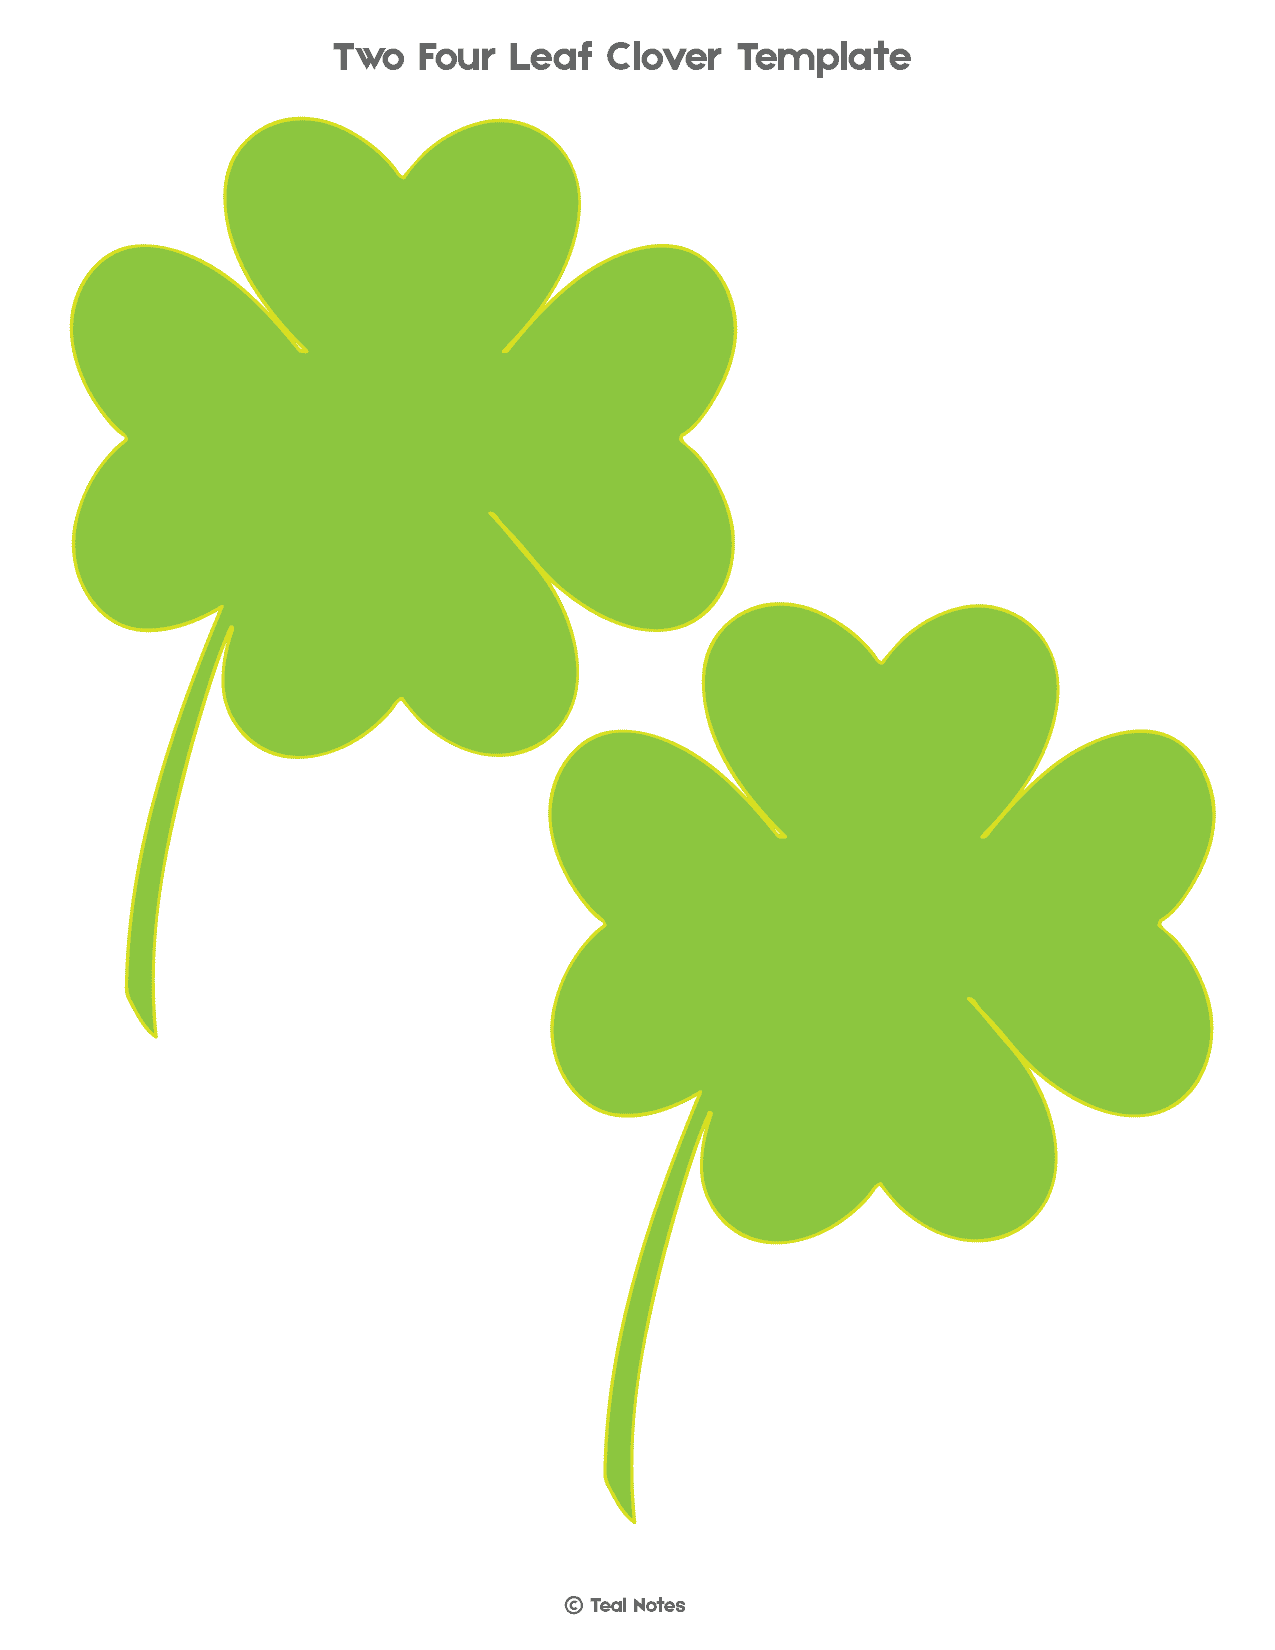 photograph about Four Leaf Clover Printable Template identify 4 Leaf Clover Template: Totally free Shamrock Template Printable